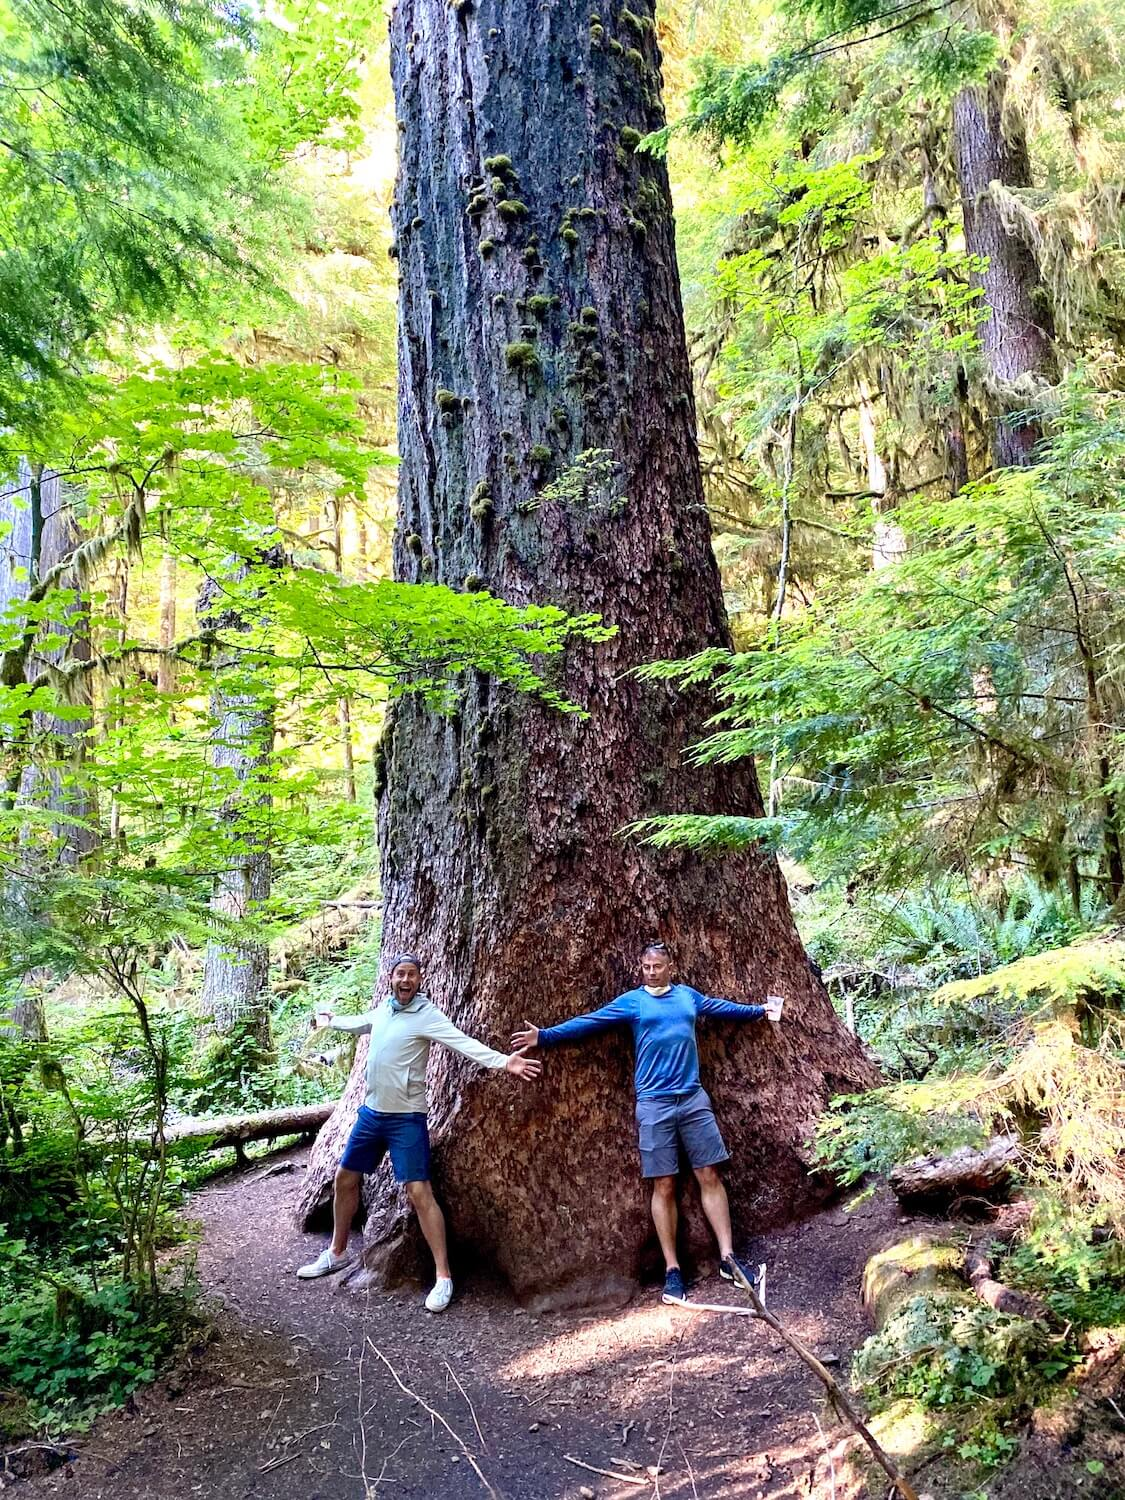 Two men stand arm to arm around a giant old growth Douglas fir tree in the forest surrounding Lake Crescent Lodge. The access to nature in the this part of the Olympic National Park is inspiring. The giant tree trunk is surrounded by lower level maple trees.